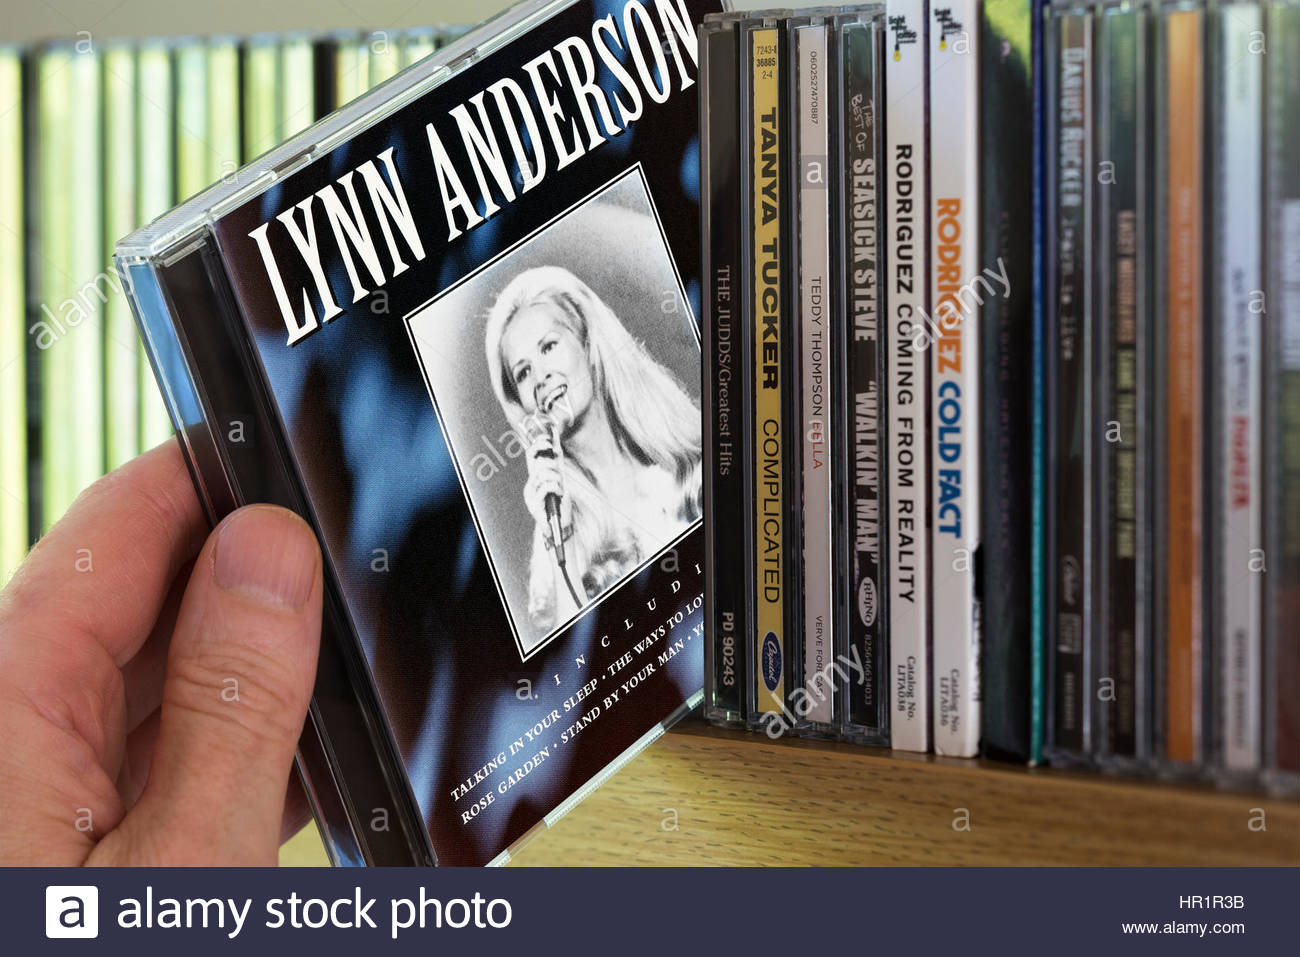 Lynn Anderson CD being chosen from a shelf of other CD's, England - Stock Image